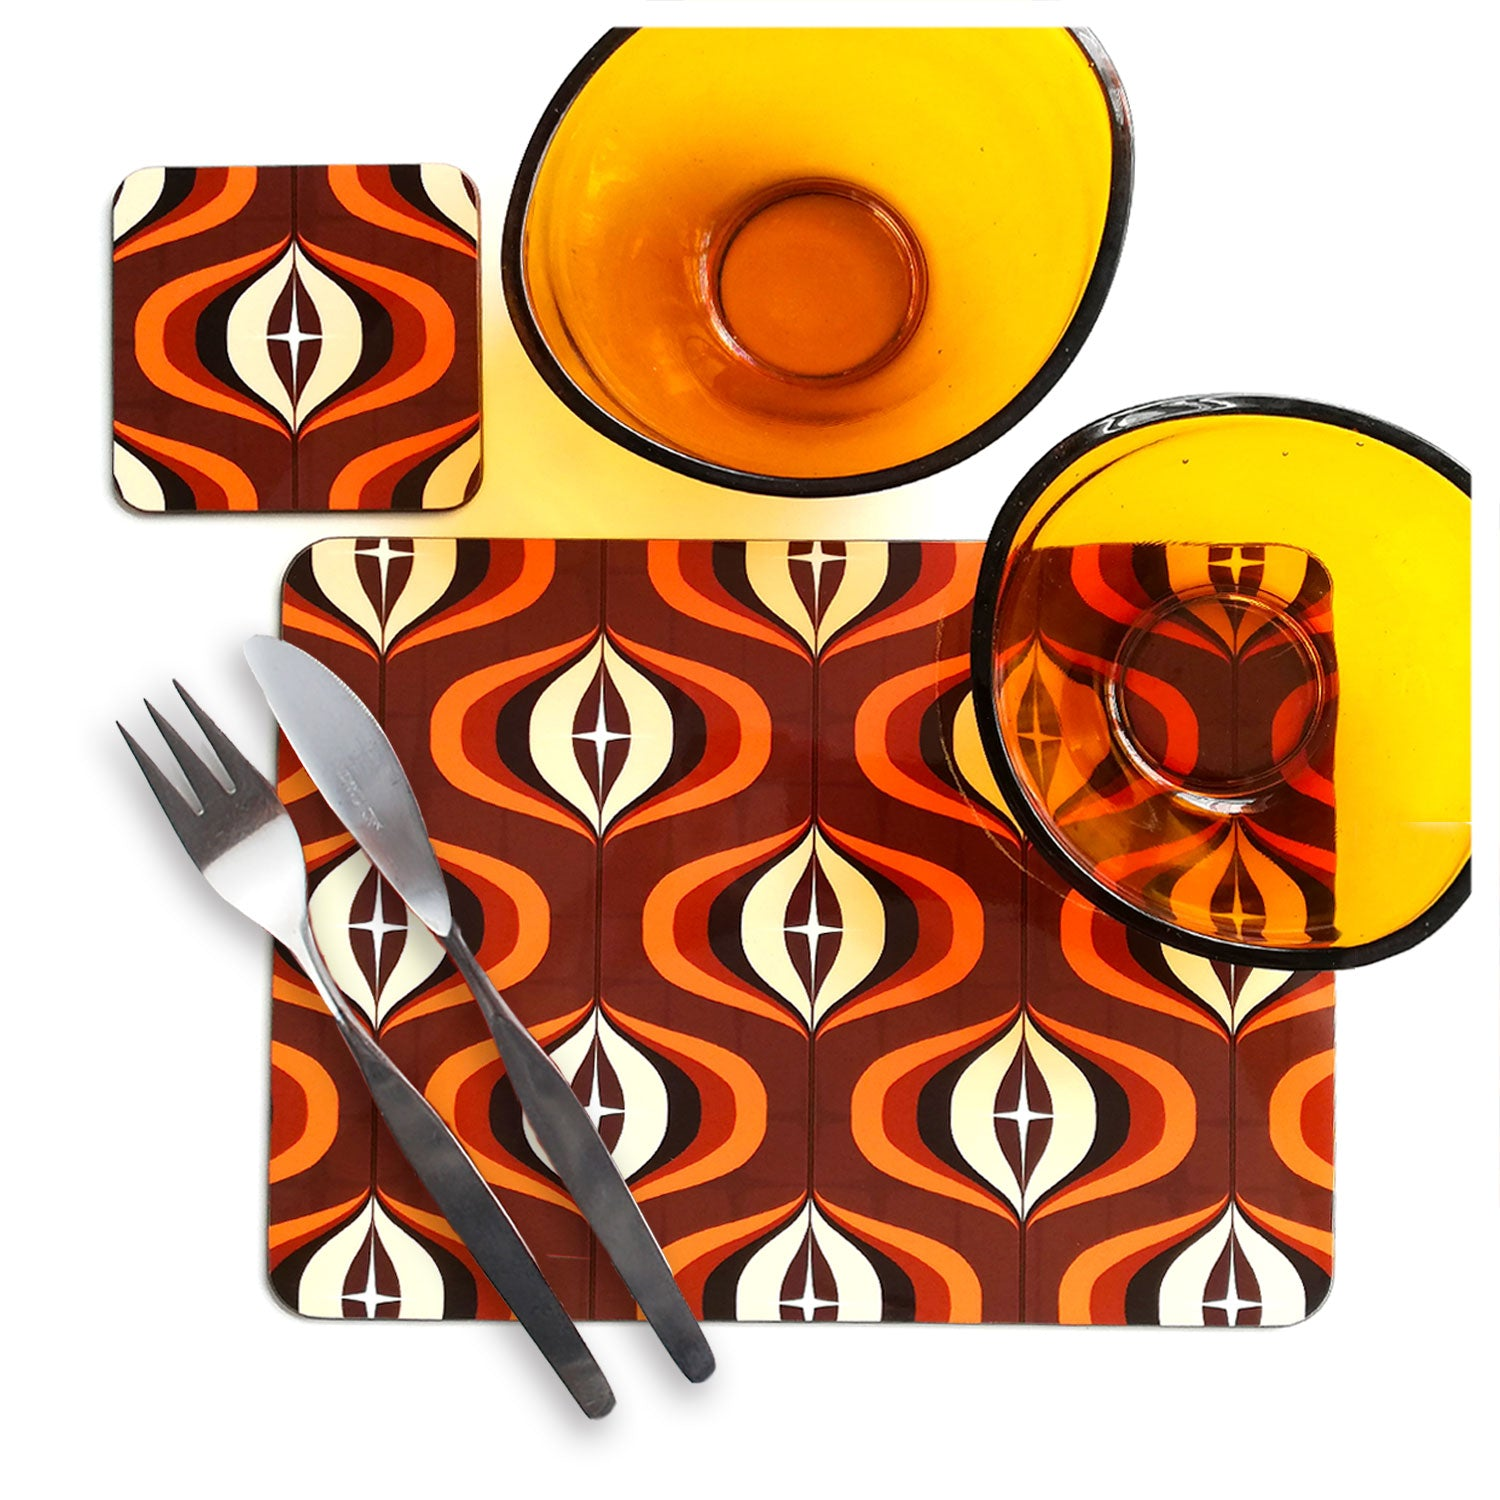 70s style Op Art Placemat & matching Coaster in Orange & Brown | The Inkabilly Emporium